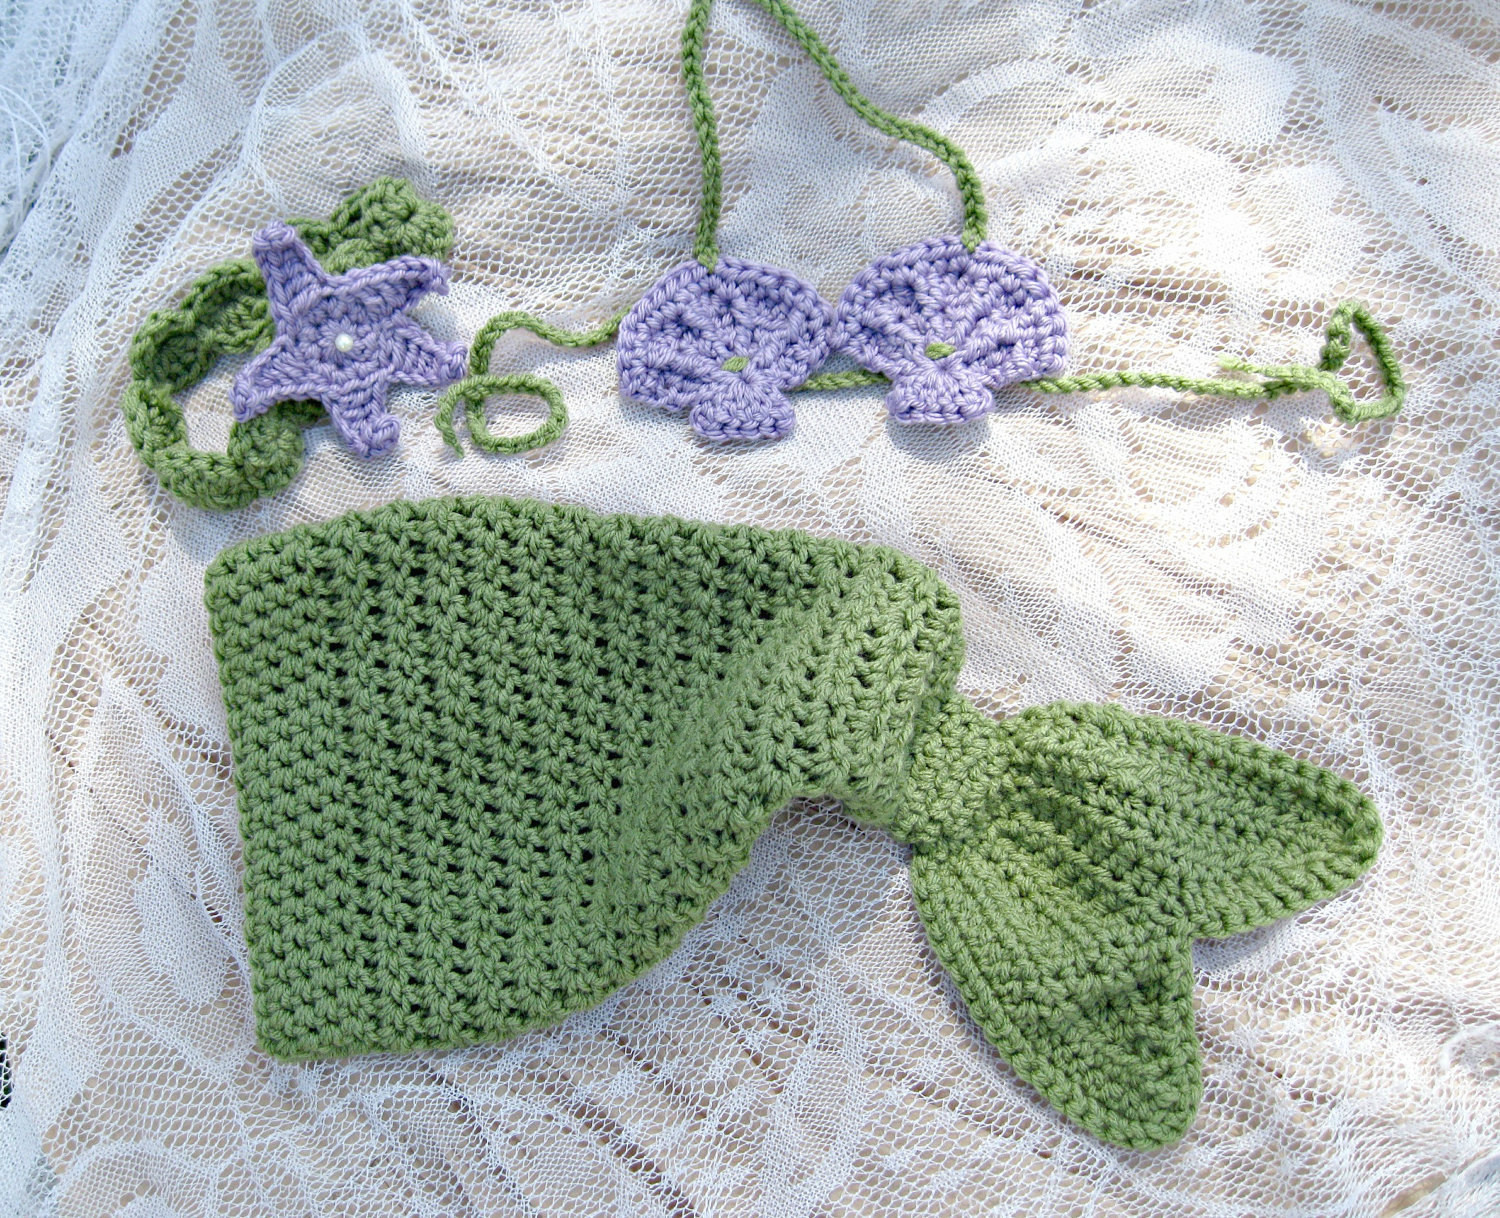 Crochet Mermaid Baby Outfit Beautiful Crochet Mermaid Inspired Baby Girl Outfit Great Graphy Of Great 49 Pics Crochet Mermaid Baby Outfit